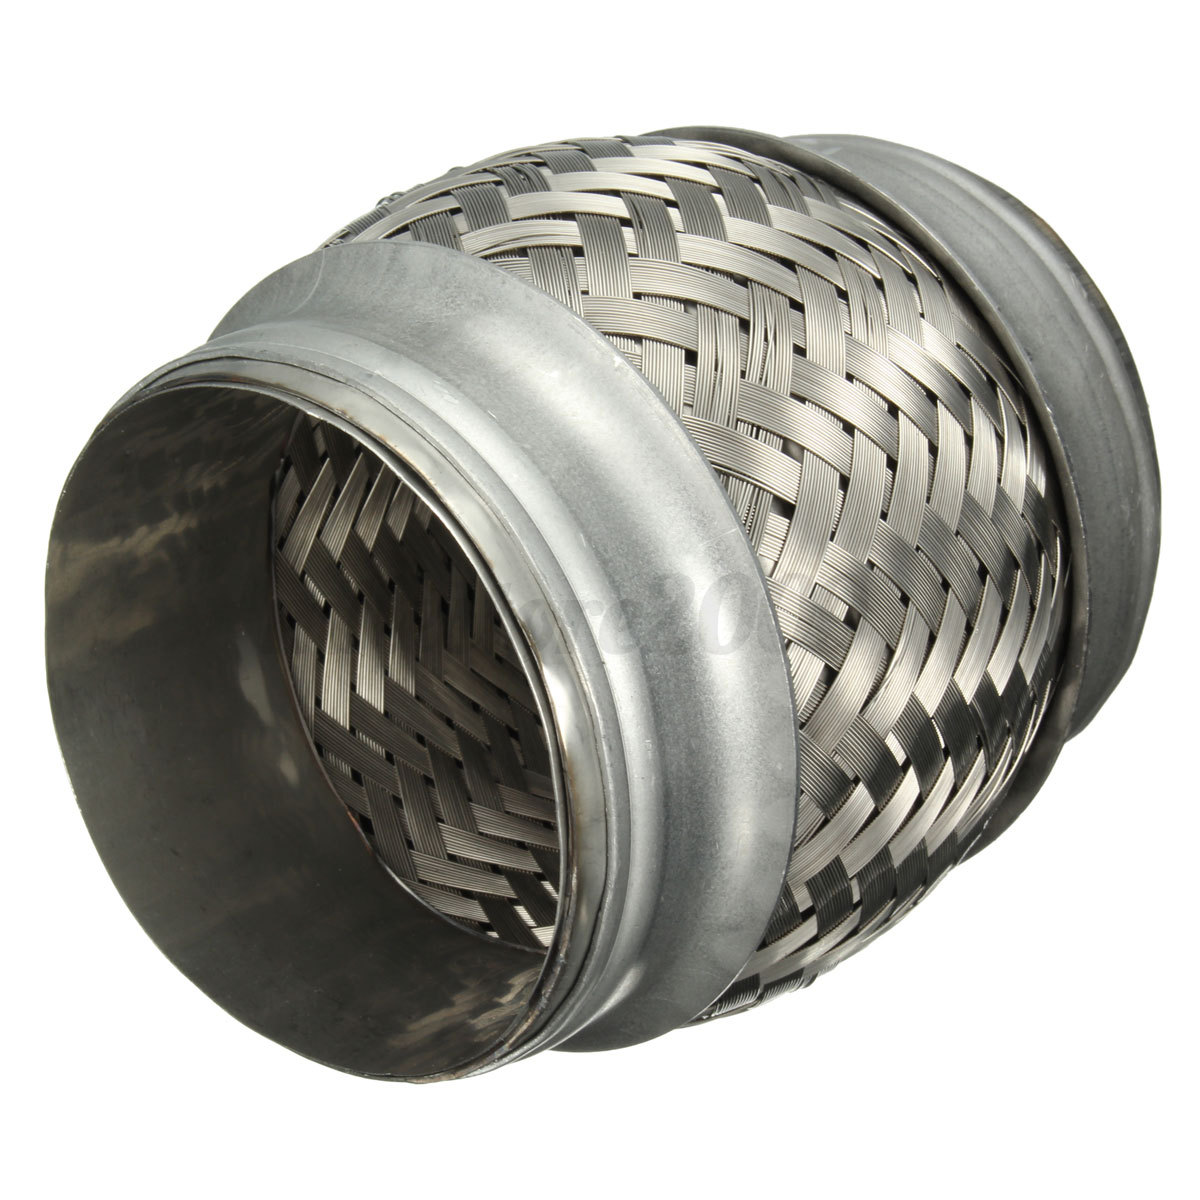 Quot stainless steel exhaust pipe double braided flex